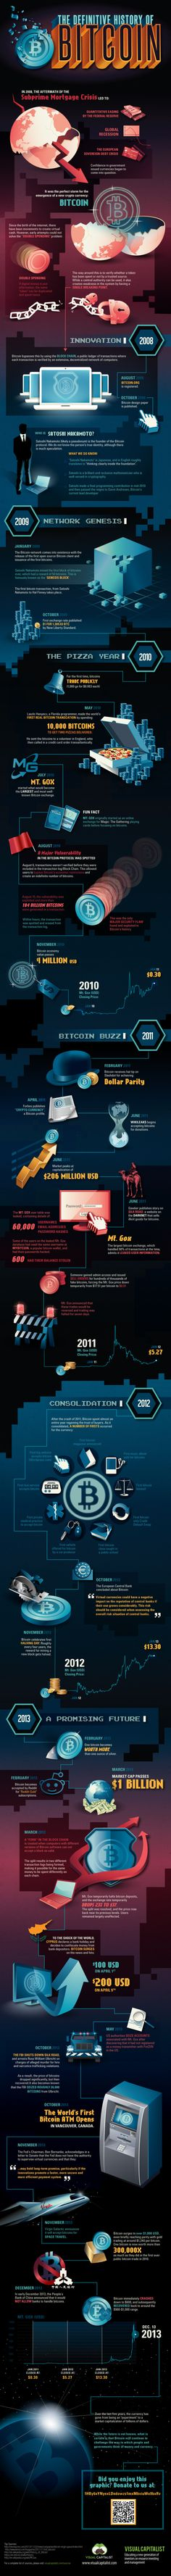 #infographic: The definitive history of Bitcoin